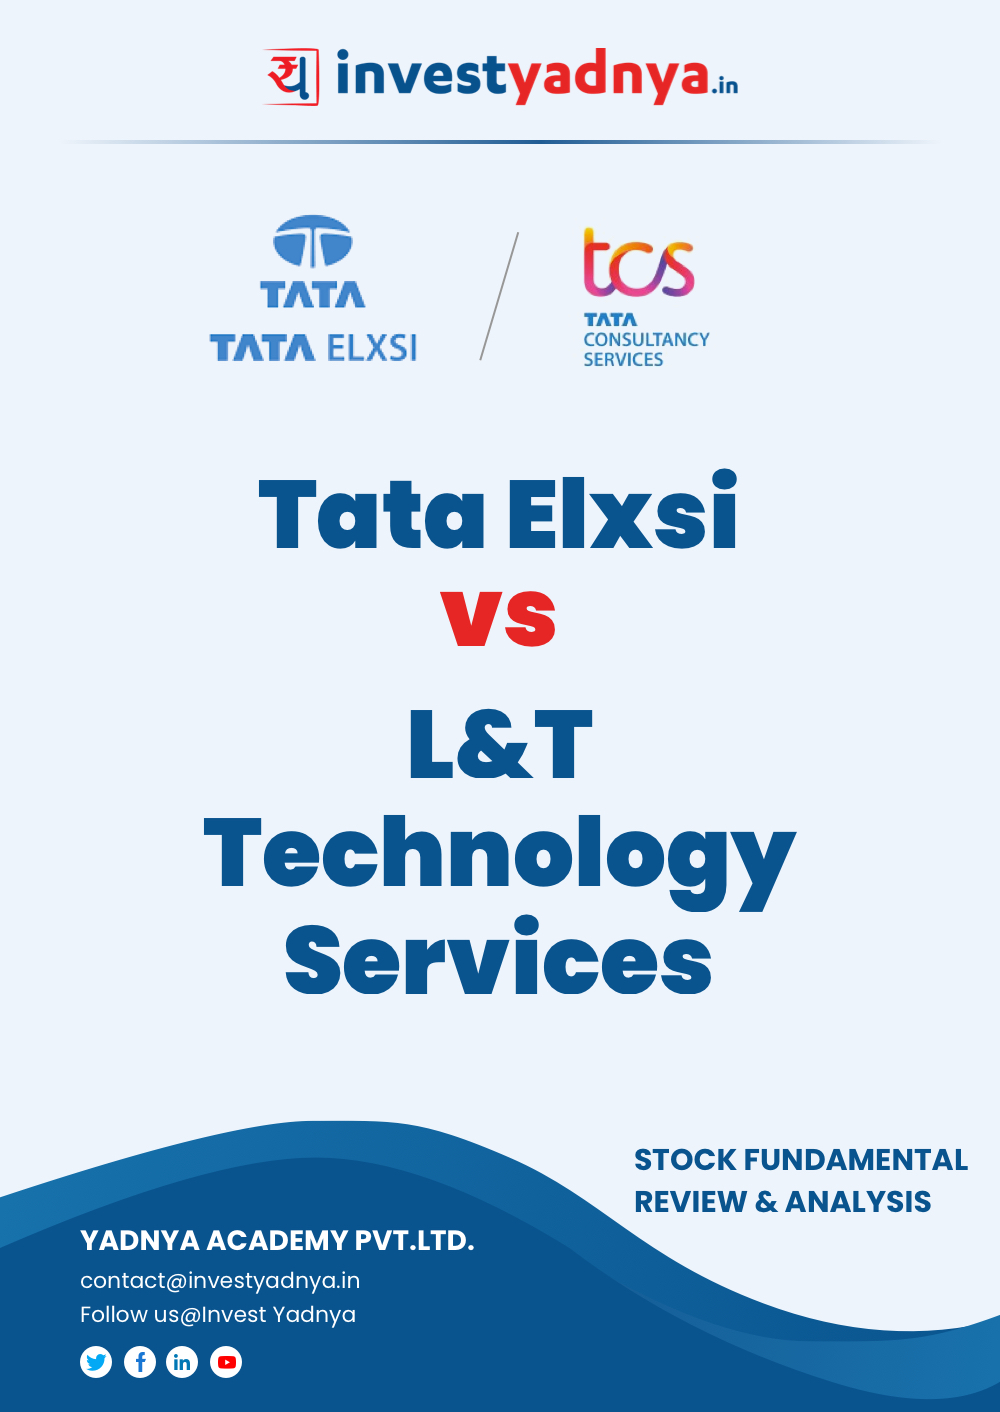 Tata Elxsi vs L&T Technology Services -  Company/Stock Review and comparison based on Q4 2020-21 and FY 2020-21 data. The ebook contains Fundamental Analysis of the companies considering both Quantitative (Financial) and Qualitative Parameters. Tata Elxsi and L&T Technology Services are leading companies in India's Engineering & R&D sector.